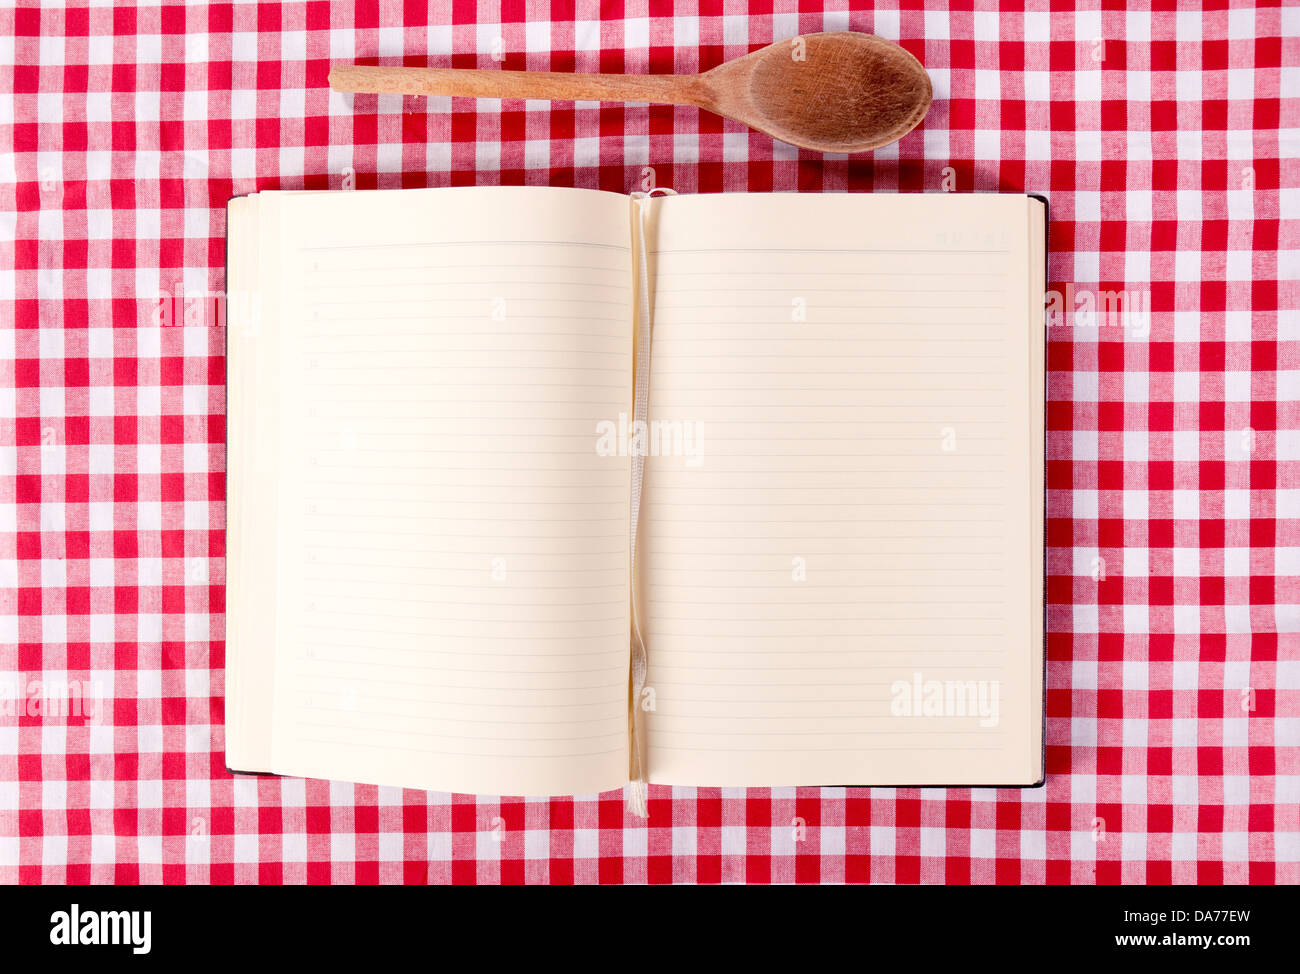 Blank Cooking Book And Wooden Ladle From Above Stock Photo 57937233